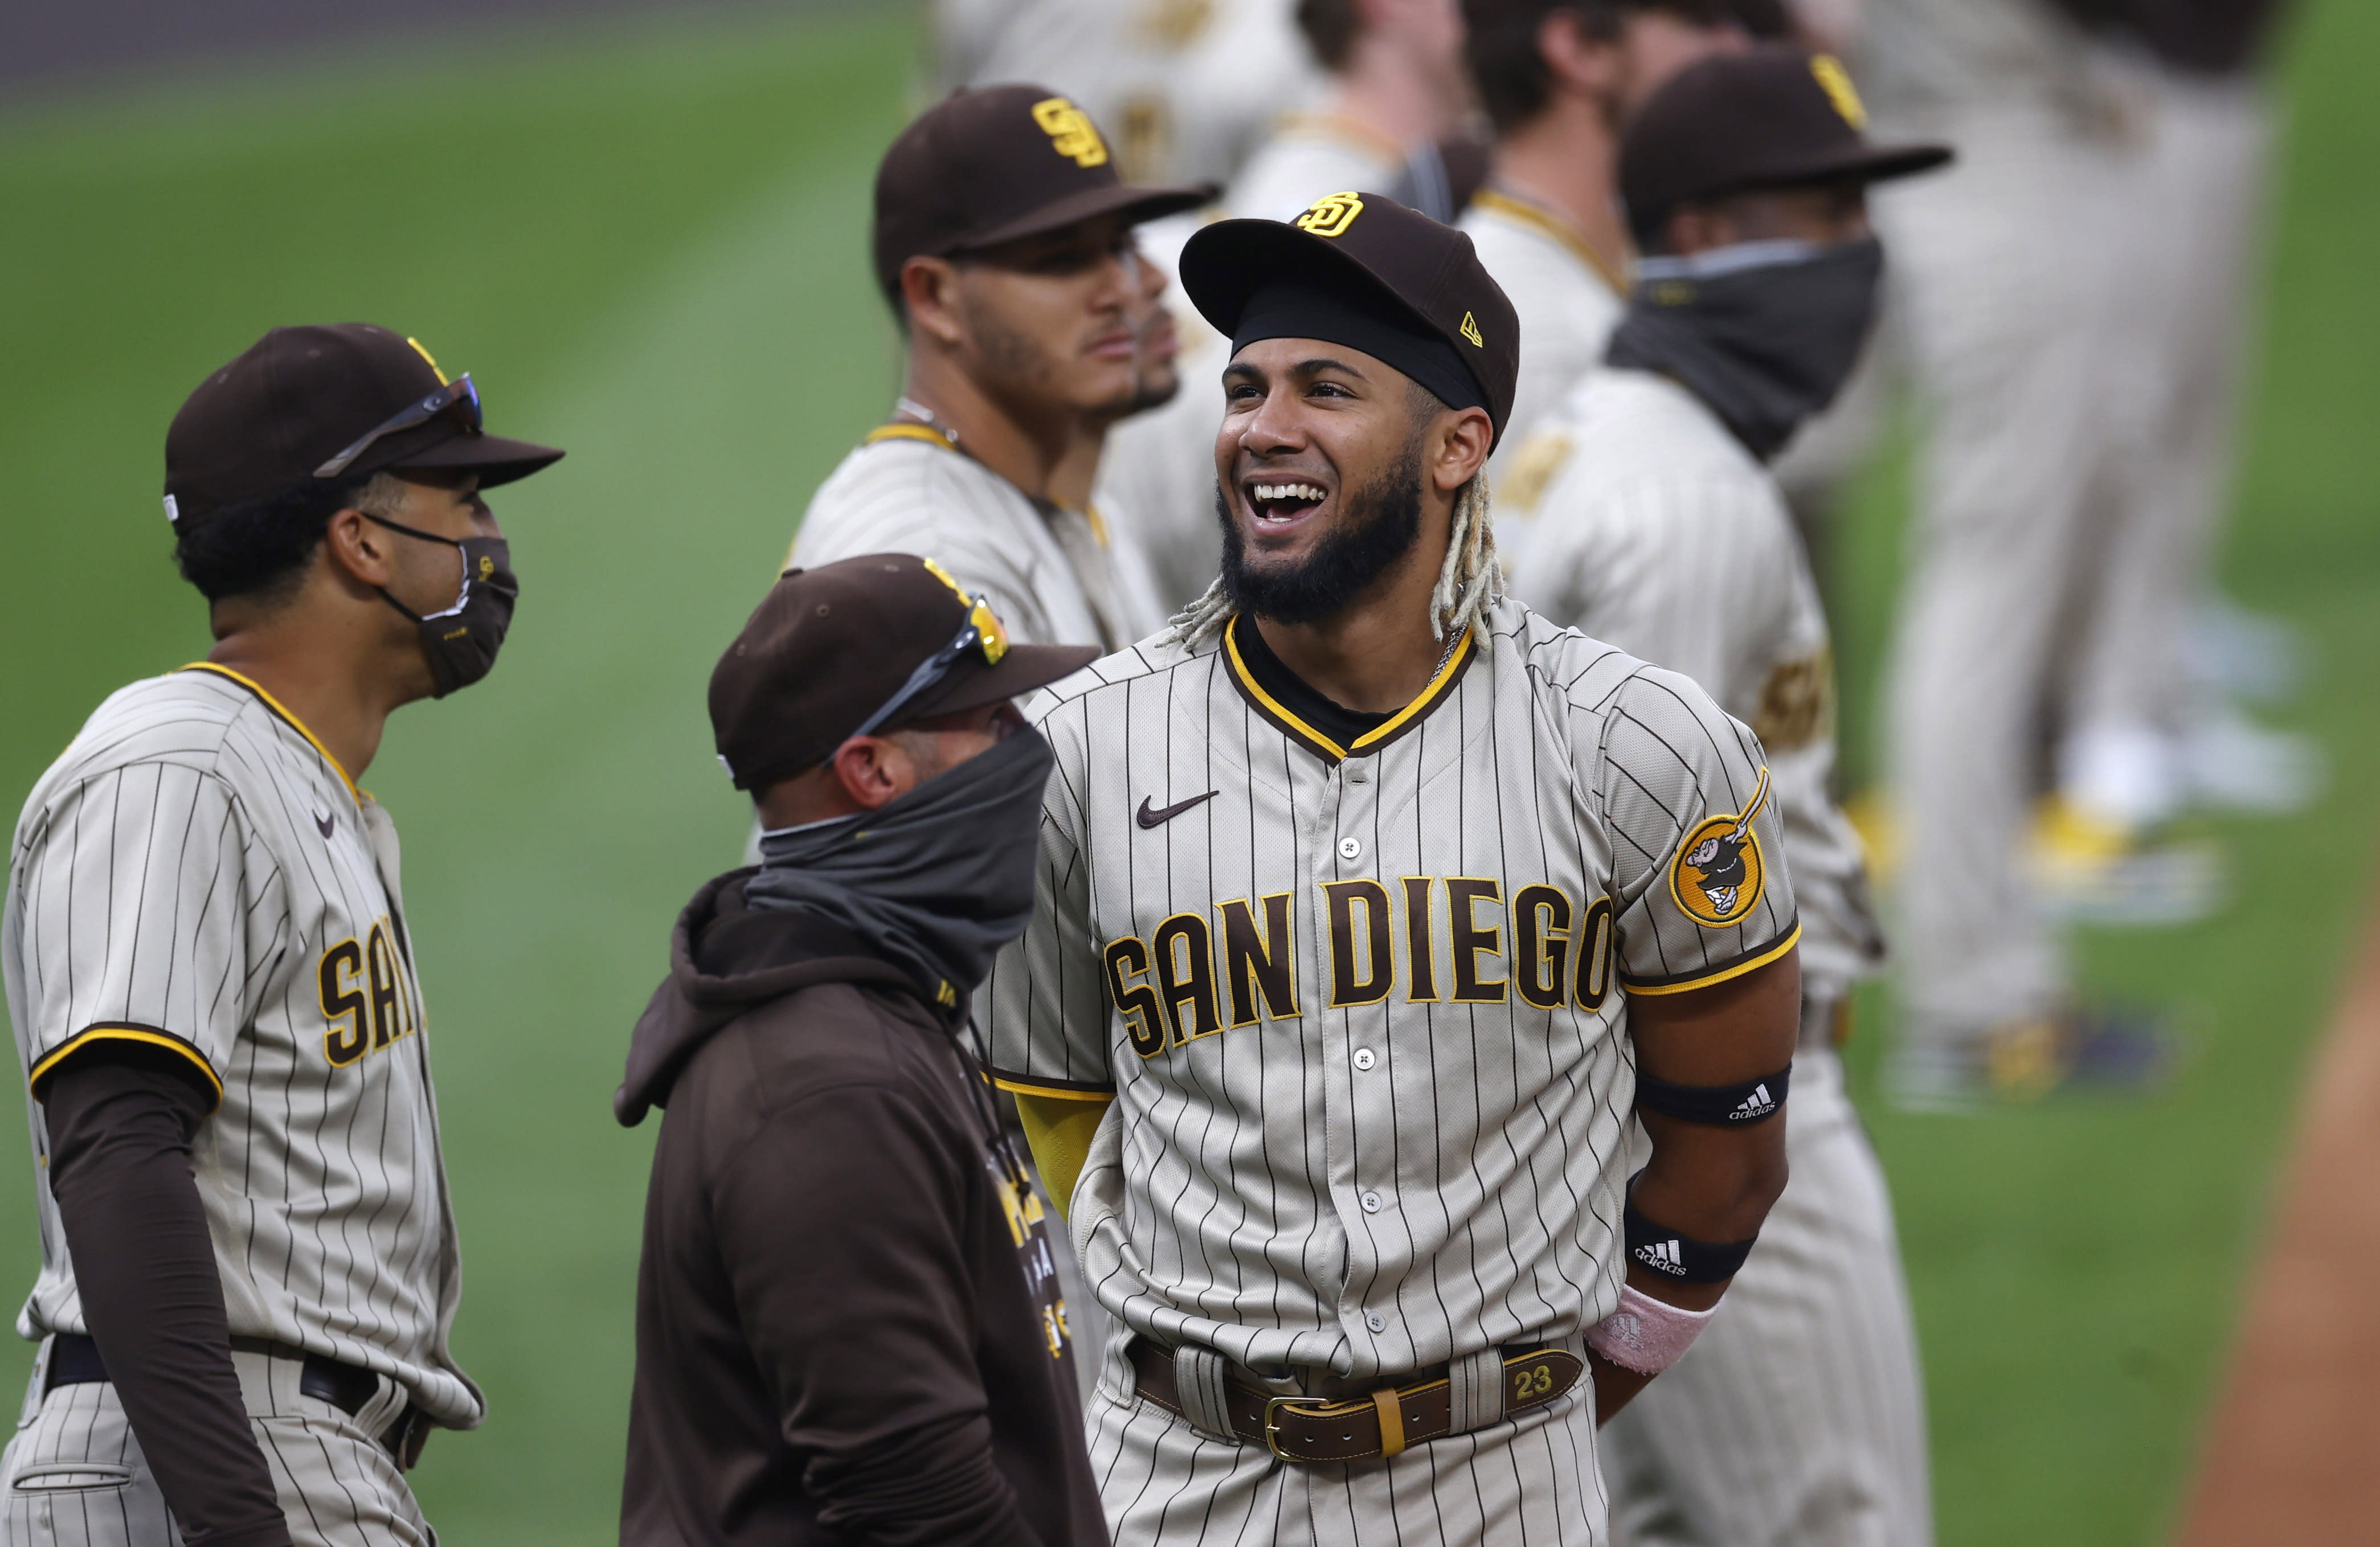 San Diego Padres shortstop Fernando Tatis Jr. jokes with teammates as they line up for introductions before a baseball game against the Colorado Rockies Friday, July 31, 2020, in Denver. (AP Photo/David Zalubowski)